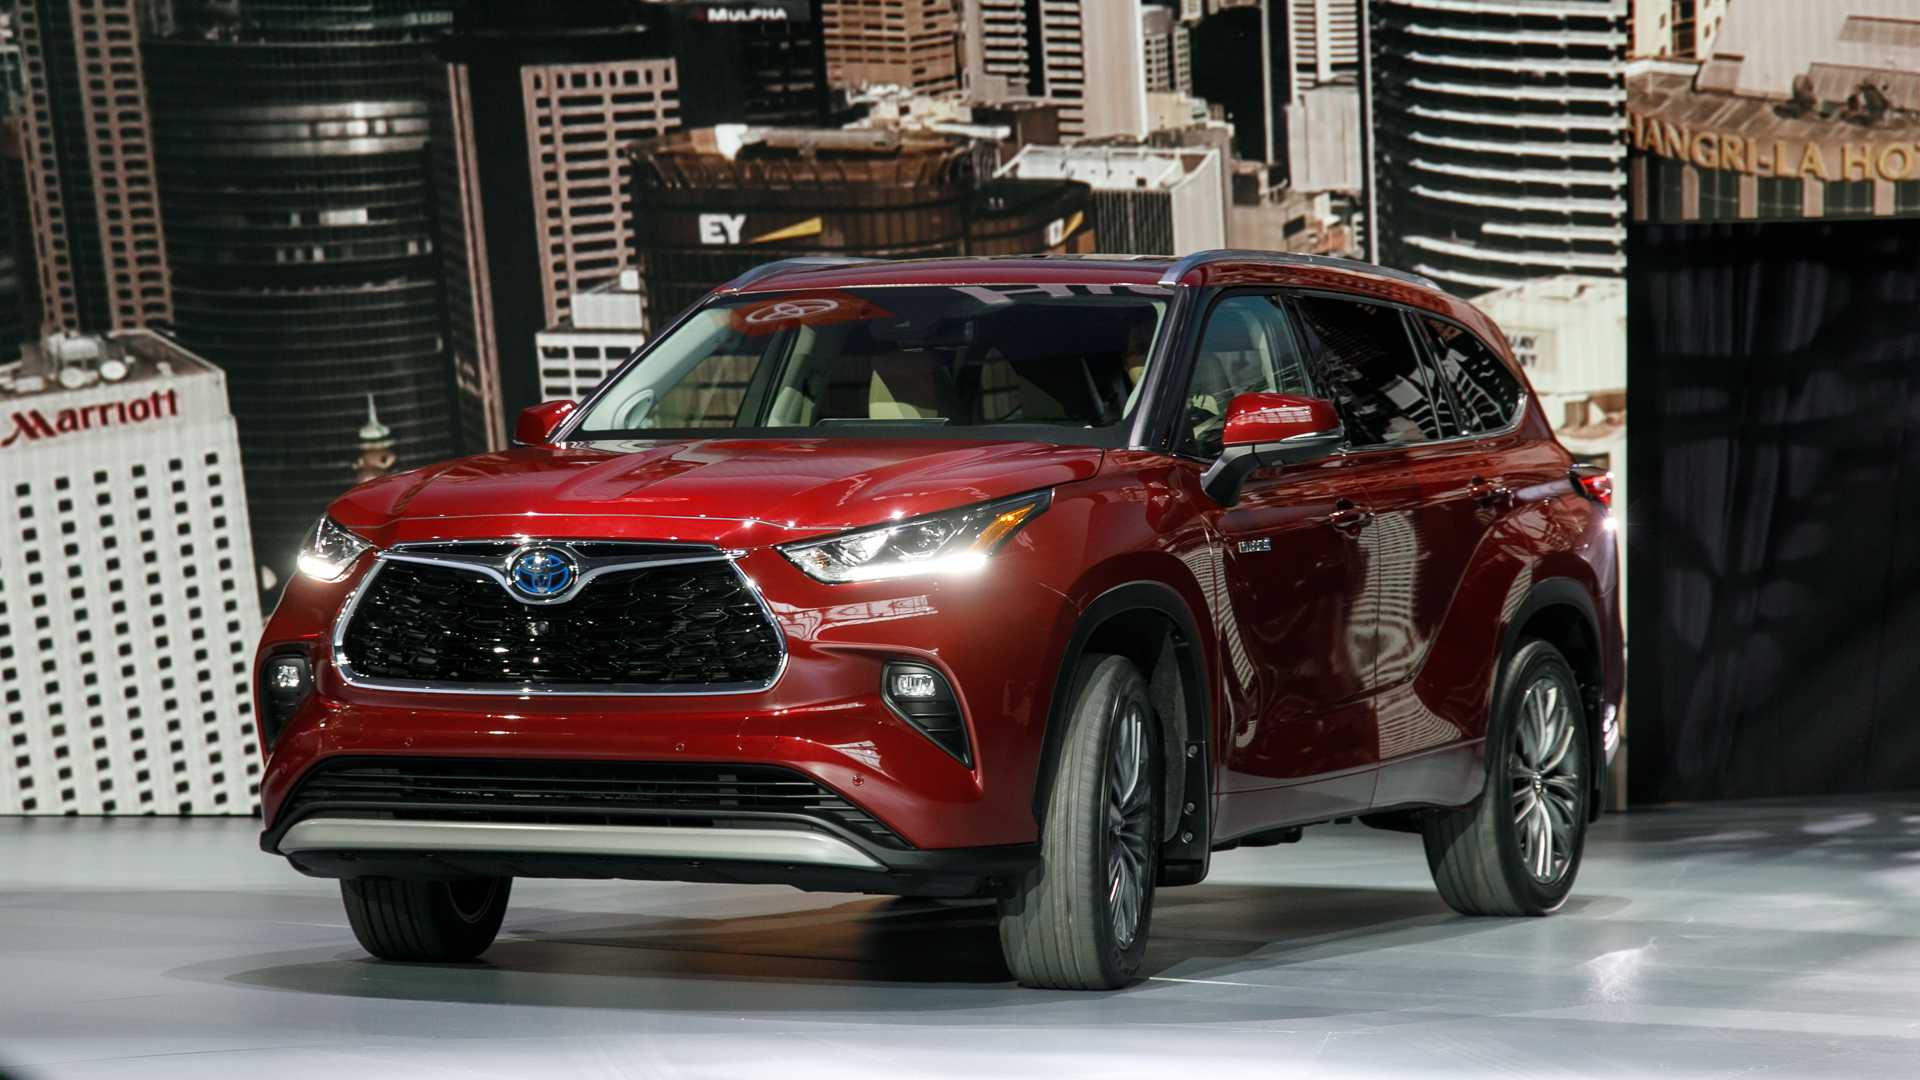 41 Gallery of Toyota Kluger 2020 Performance by Toyota Kluger 2020